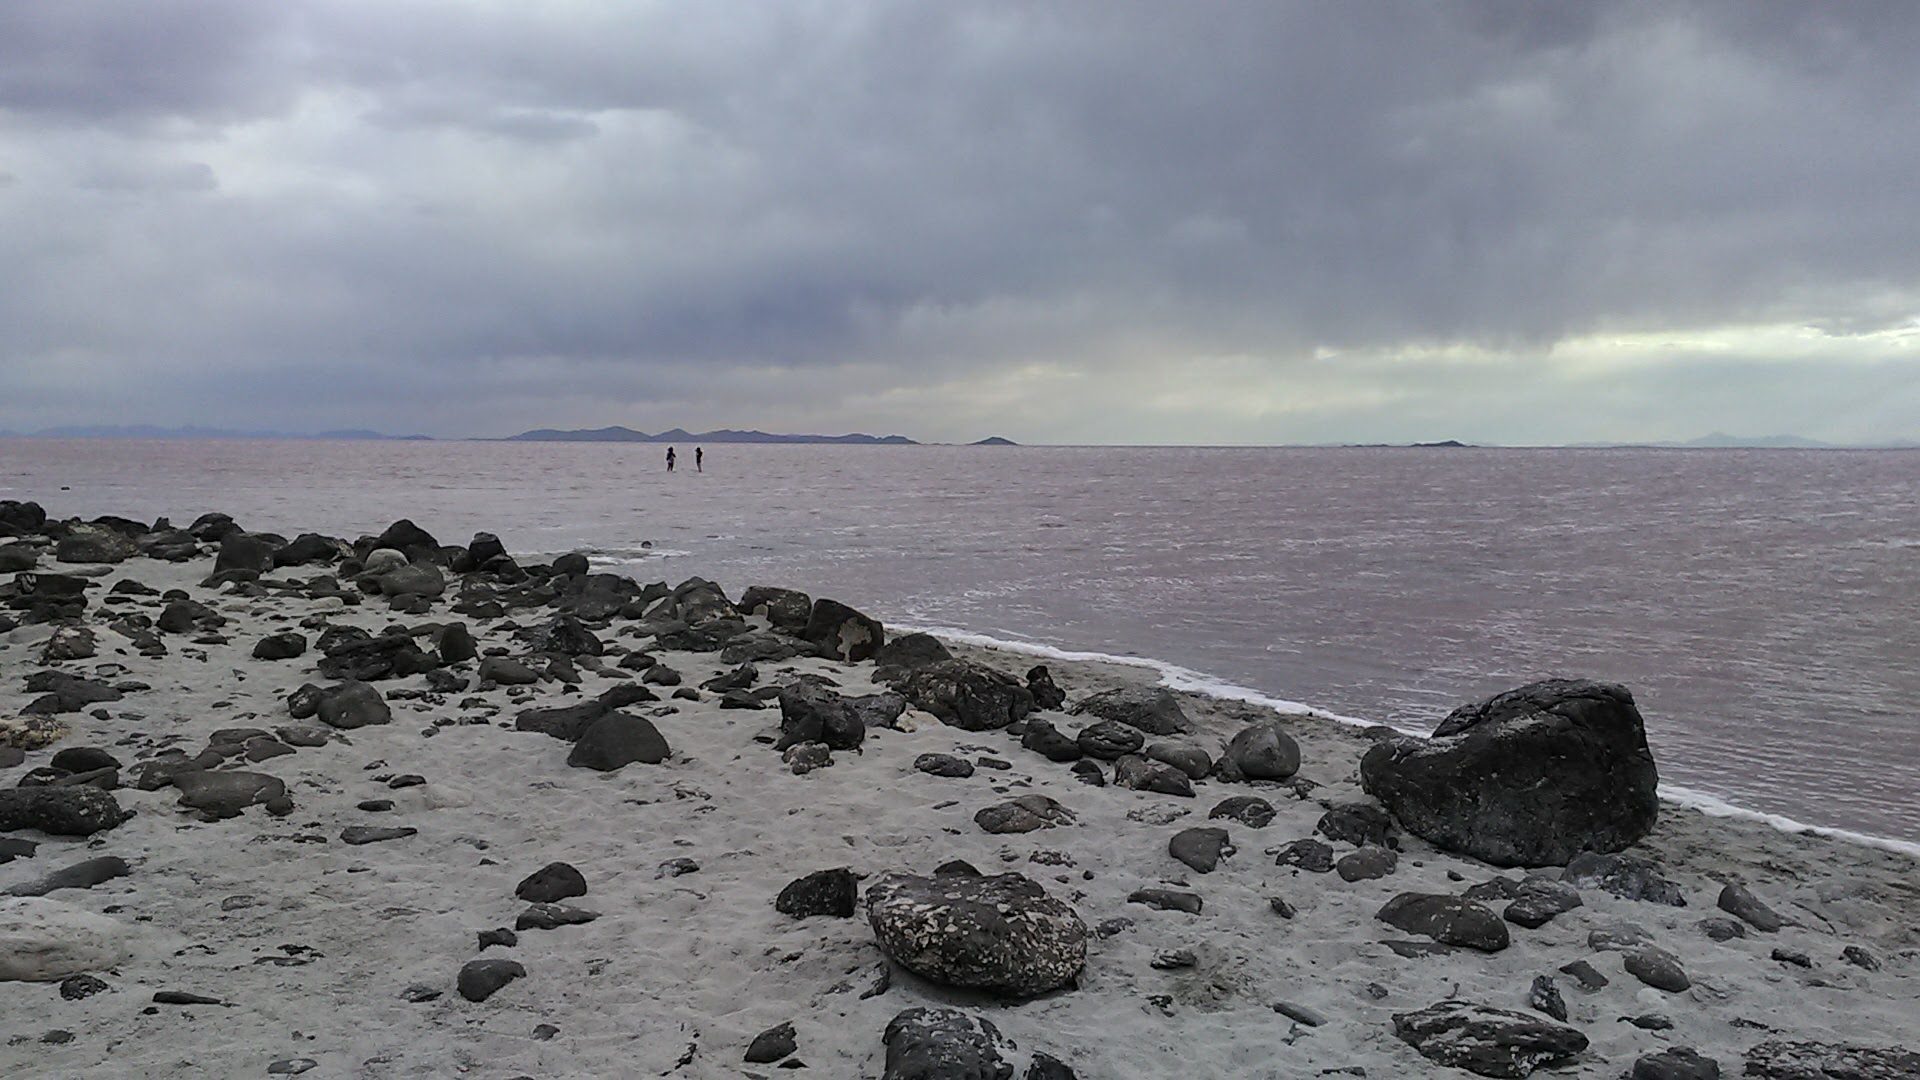 Spiral Jetty, Rozel Point, Great Salt Lake, Utah